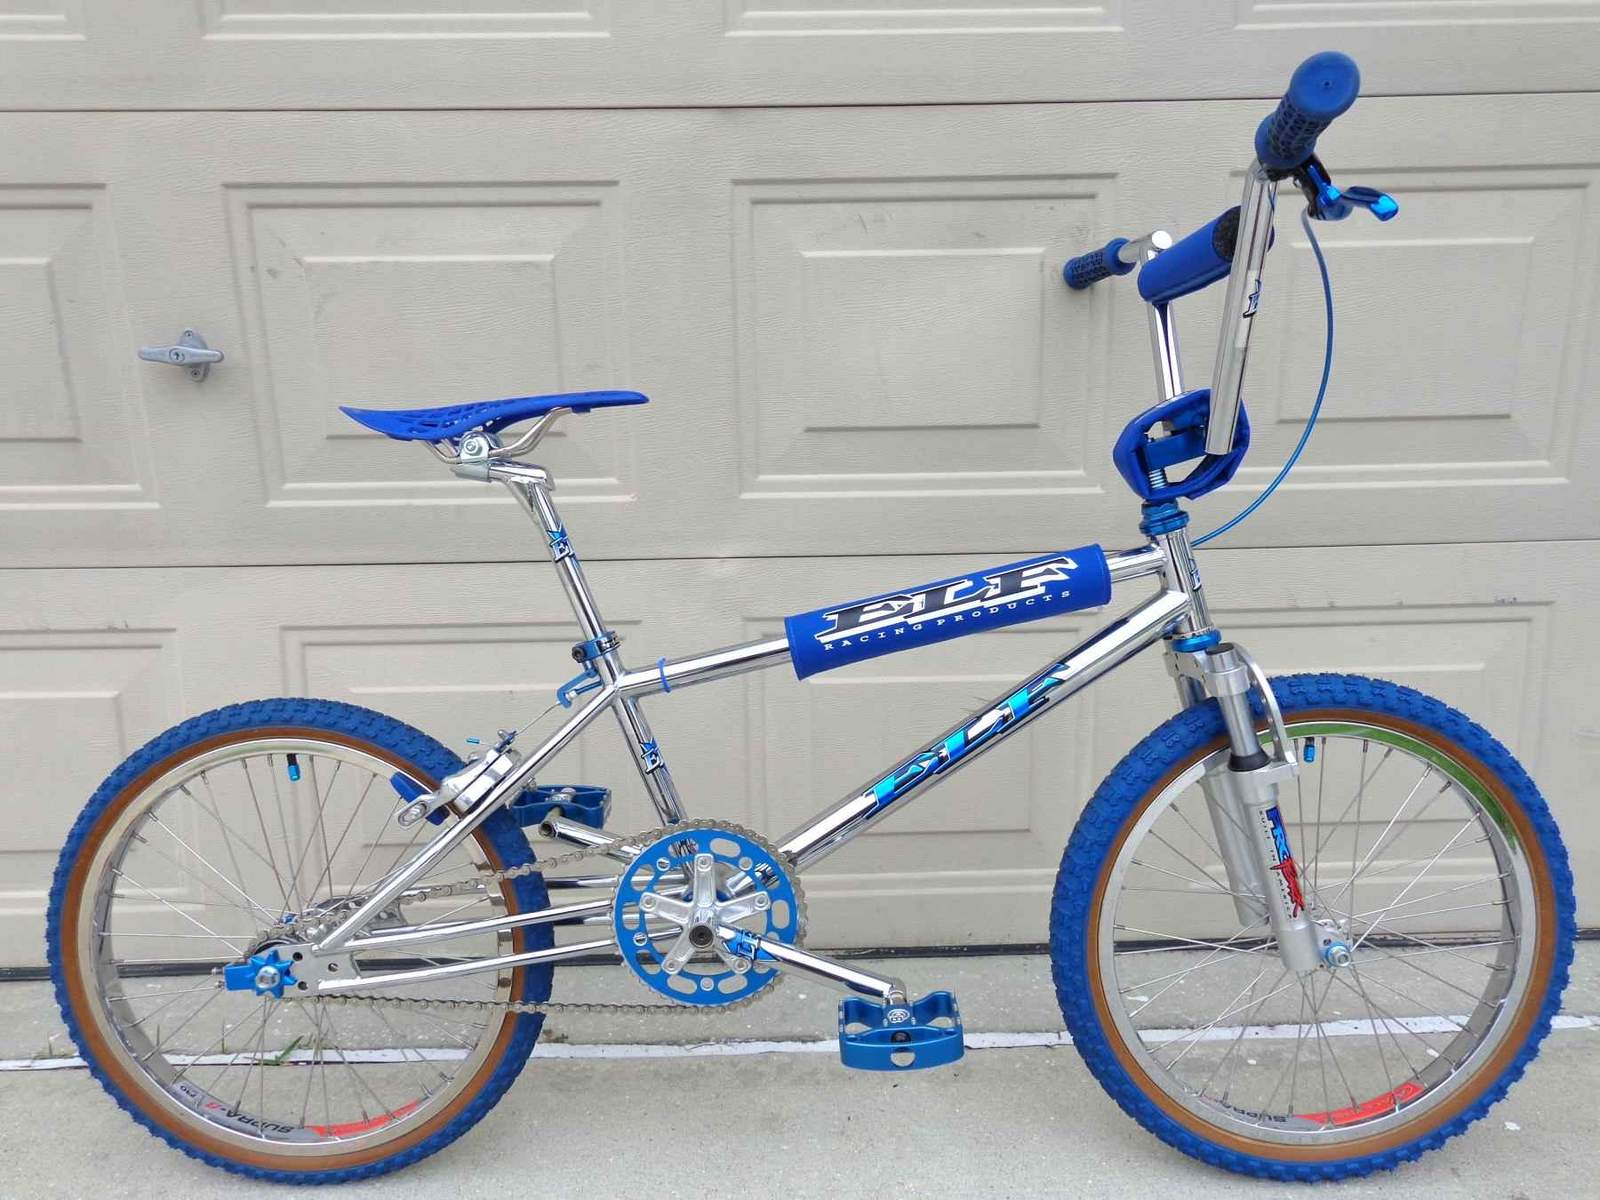 http://uploads.bmxmuseum.com/user-images/31504/dsc039915cb893d32774c_blowup5cbf5b3552.jpg